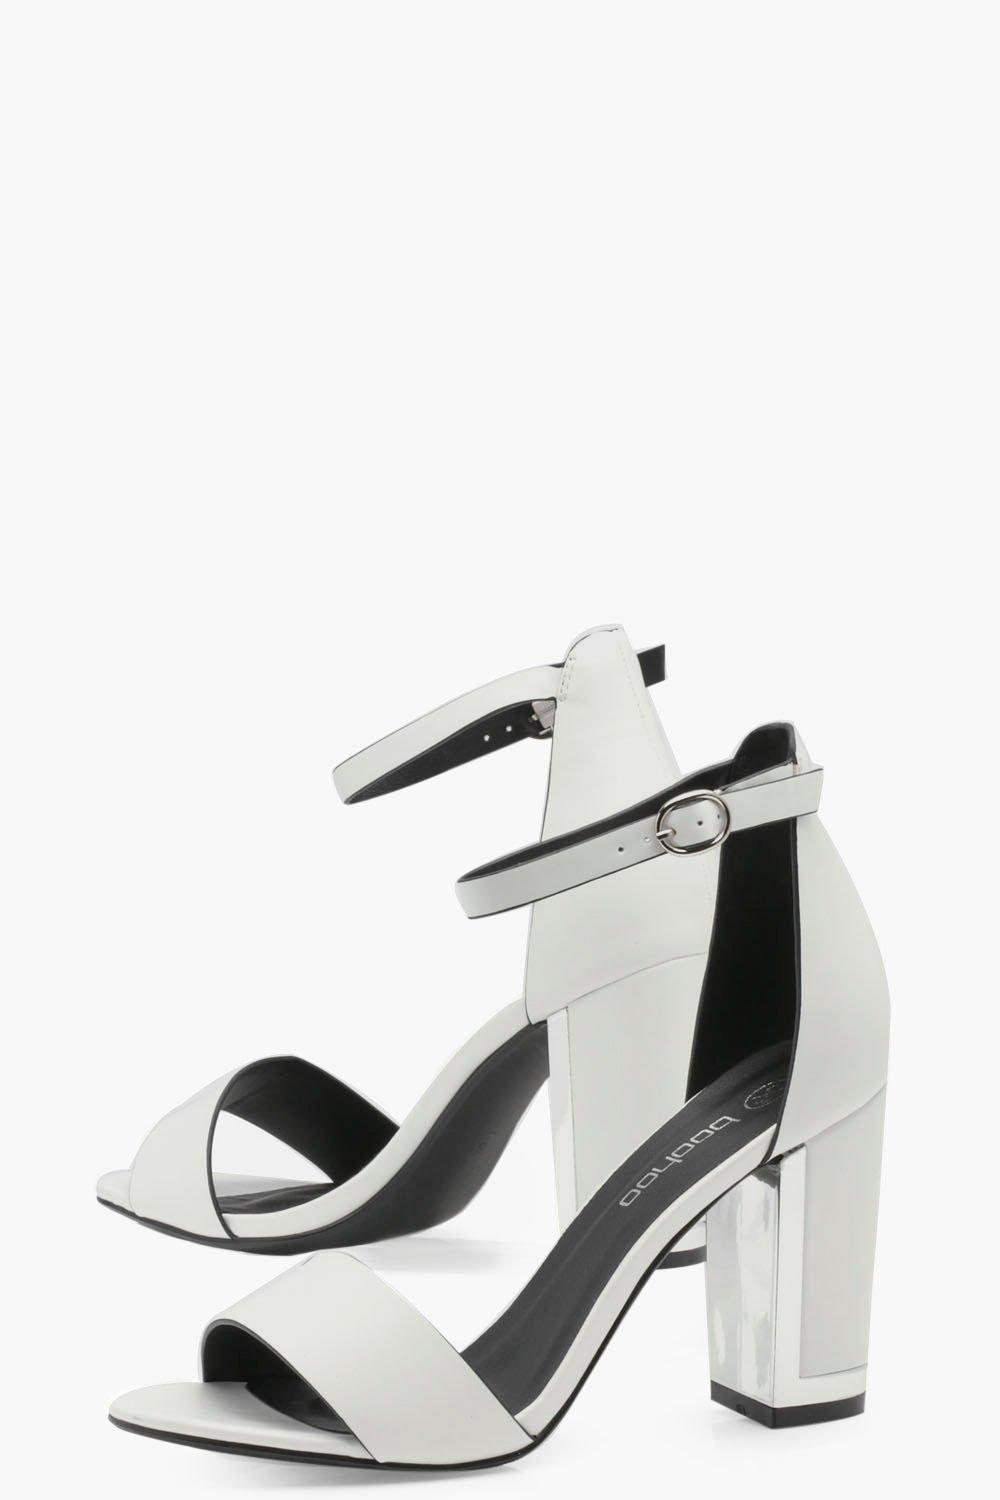 dbce0246793c4 https   www.lyst.com shoes giuseppe-zanotti-cutout-suede-ankle-boots ...